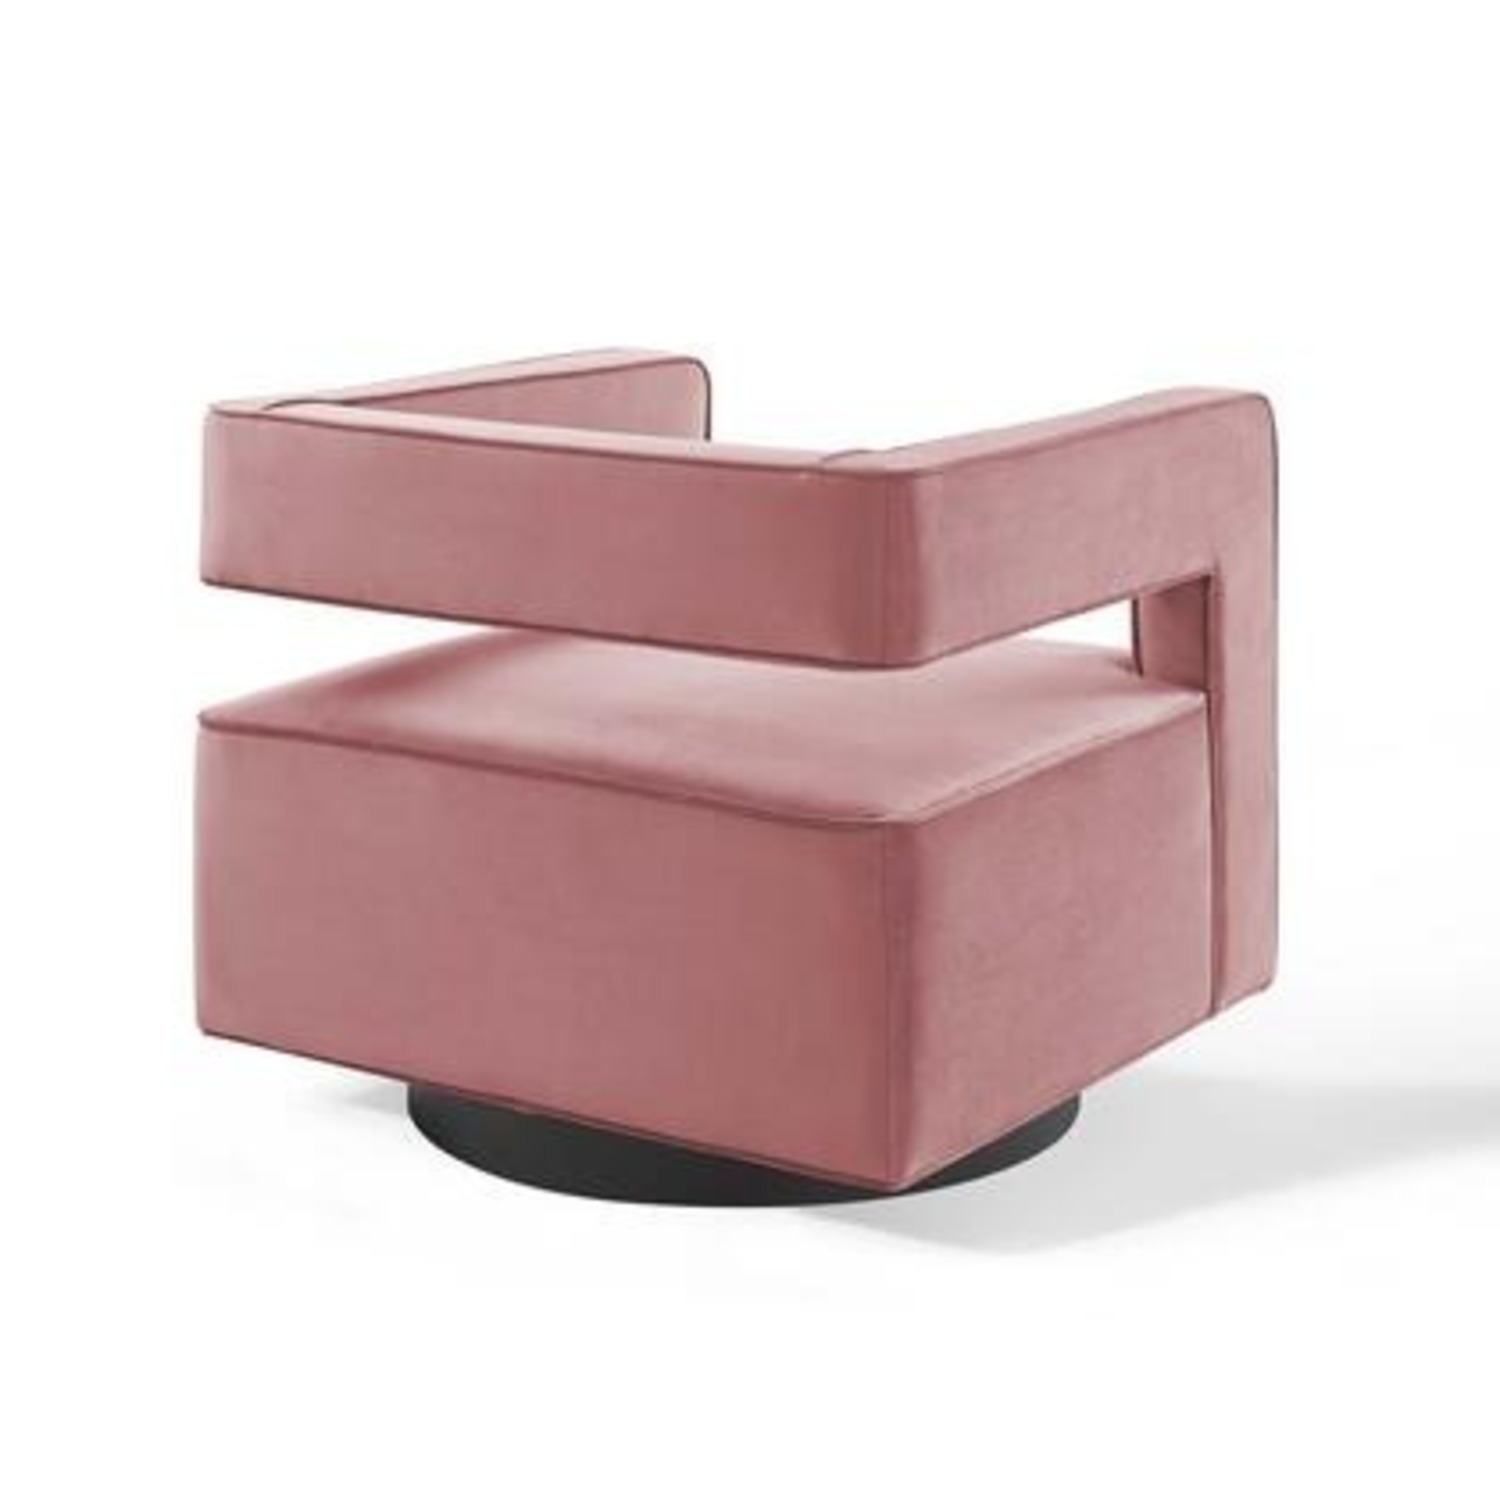 Armchair In Dusty Rose W/ Squared Cutaway Back - image-1